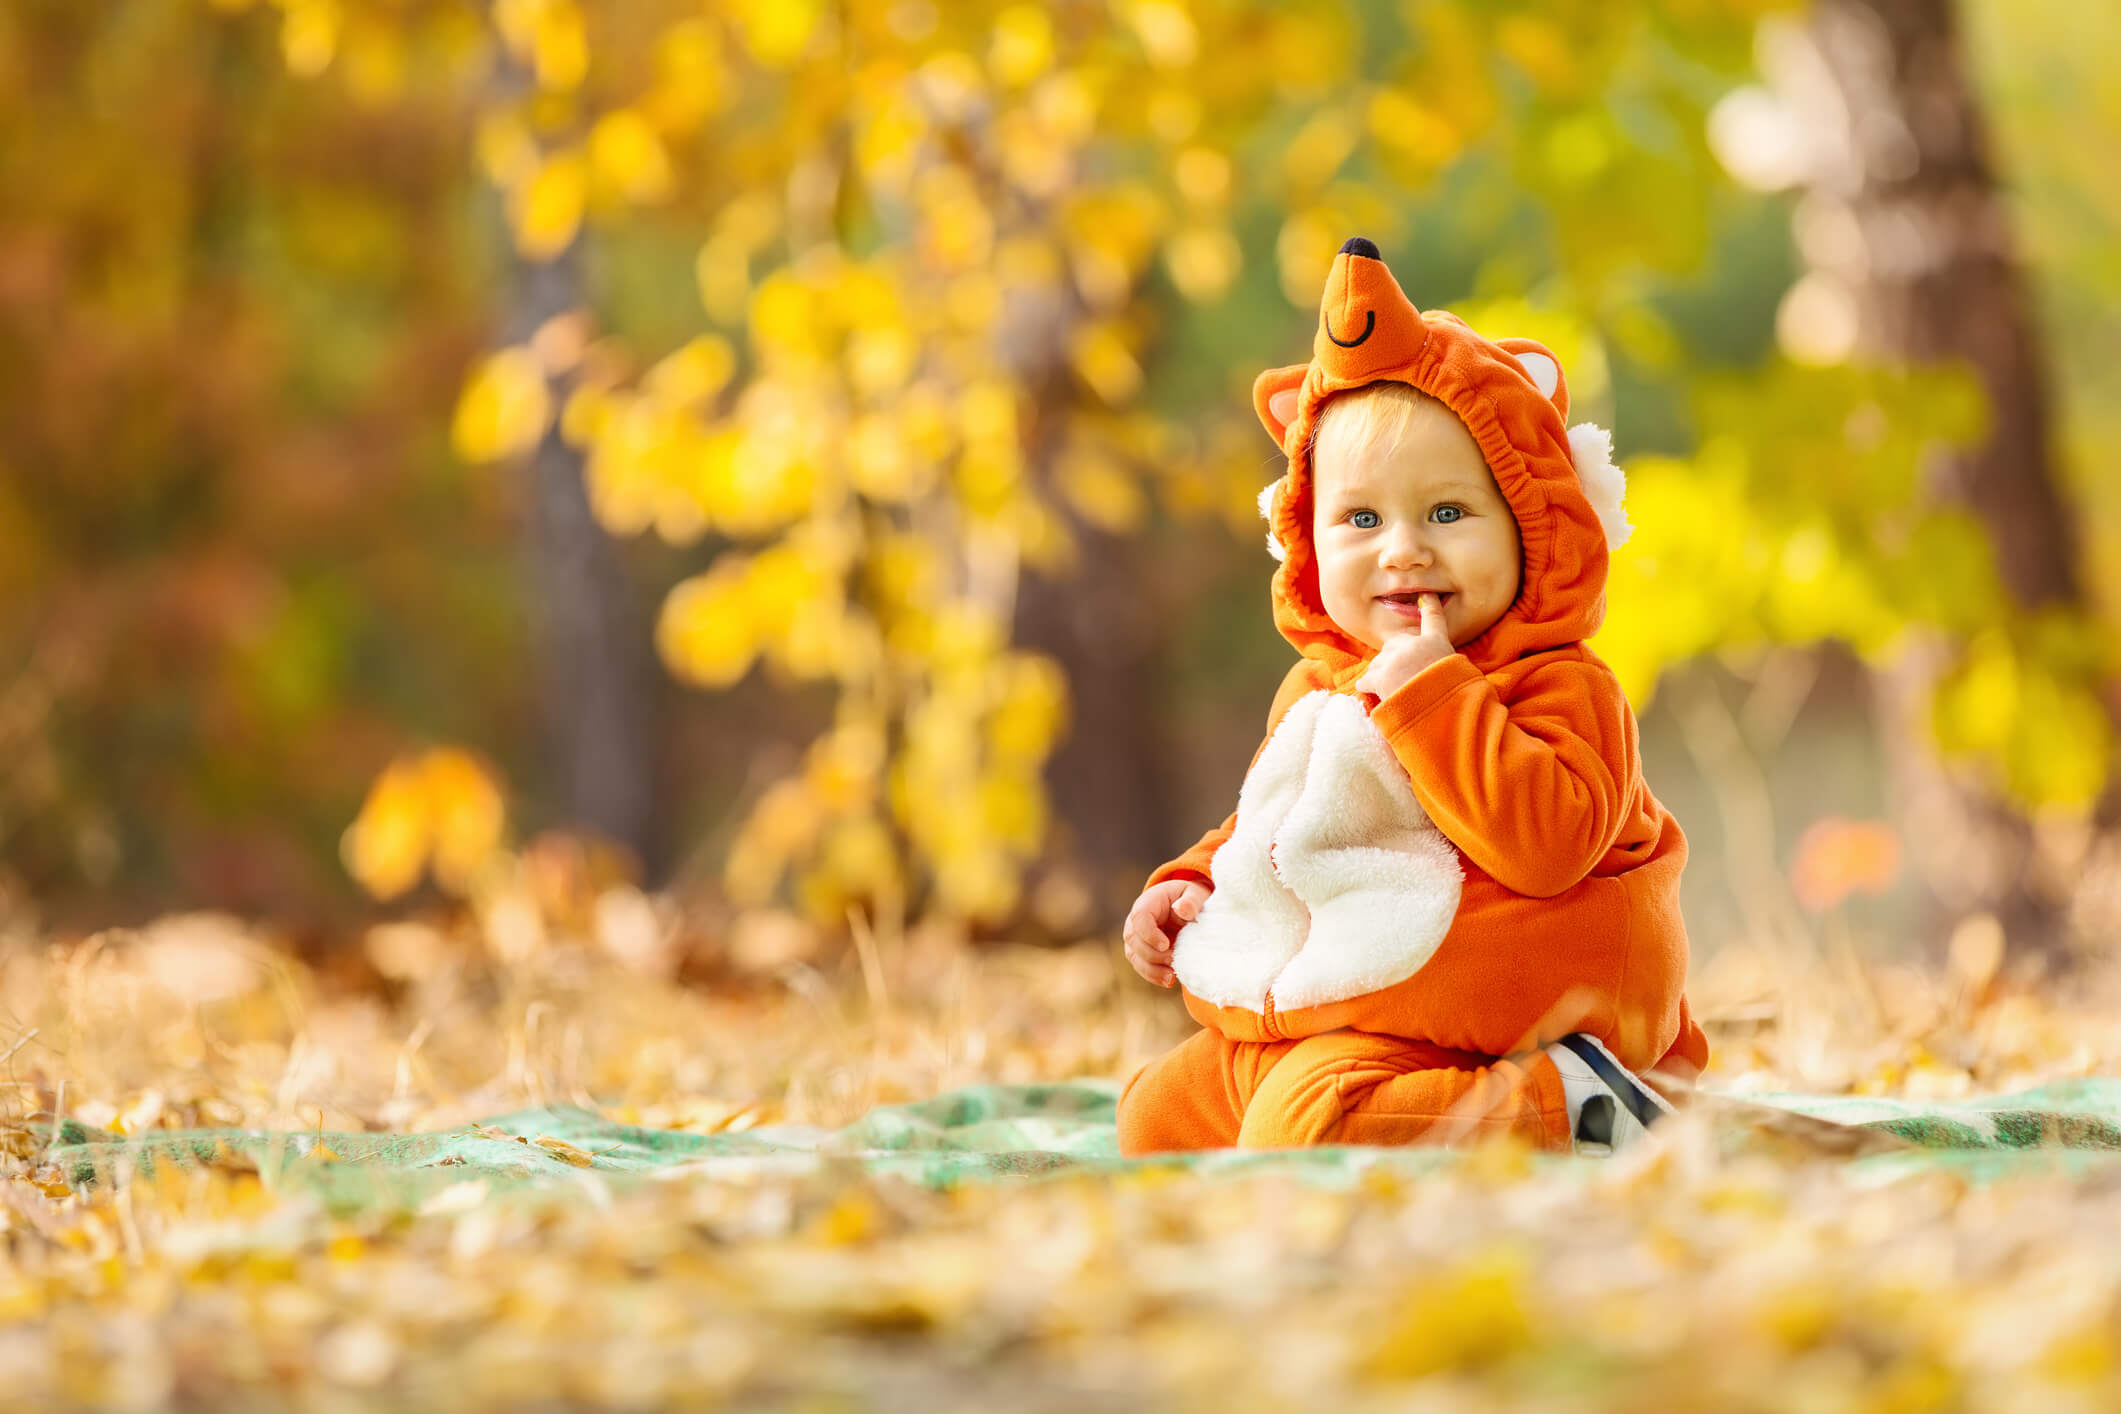 Babys First Halloween Costume Girl.2017 S Most Adorable Infant Costumes For Baby S First Halloween